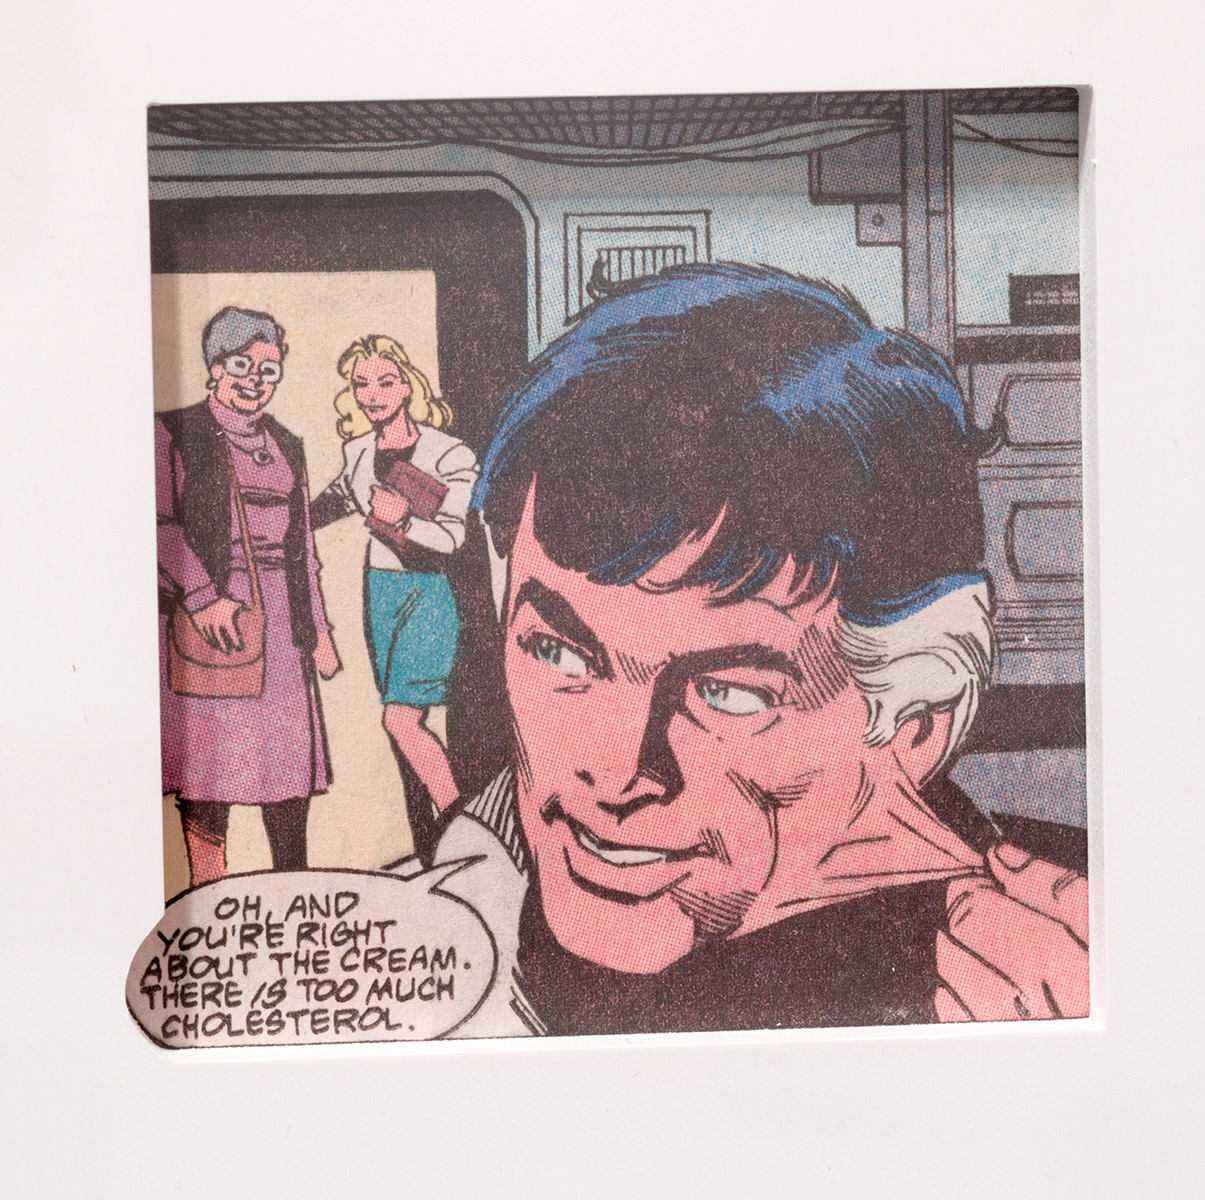 Detail of  Unmaskings (1962–2001: Jimmy Olsen 59; Super Girl and Wonder Woman 63; Jimmy Olsen 79; Detective Comics 335; Bob Hope 93; BlackHawk 210B; Action Comics 349; Jimmy Olsen 111; Green Lantern 69; Action Comics 379; Detective Comics 407; Adventure Comics 428; Adventure Comics 429; Black Magic 1A; Black Magic 1B; House of Mystery 237; Teen Titans Annual; Batman Family Giant 9; Iron Man 103; Batman 321; Brave and the Bold 176; Detective Comics 507A; Detective Comics 507B; Hawkeye 1; AlphaFlight 12B; Batman 318; Captain America 311; Captain America 320; Boris the Bear 11; Excalibur 1; Excalibur 2; Batman 458; The Mask 1; Human Target 1; Captain Planet 8; Batman 484; Blood and Shadows; DareDevil 358; Gen13 53; DareDevil 241; Betty and Veronica 117)    2012   Color offset periodicals, Cintra, Plexiglas, mat board  14 1/4 x 18 inches each, 41 parts   Unmaskings, 2012–2013